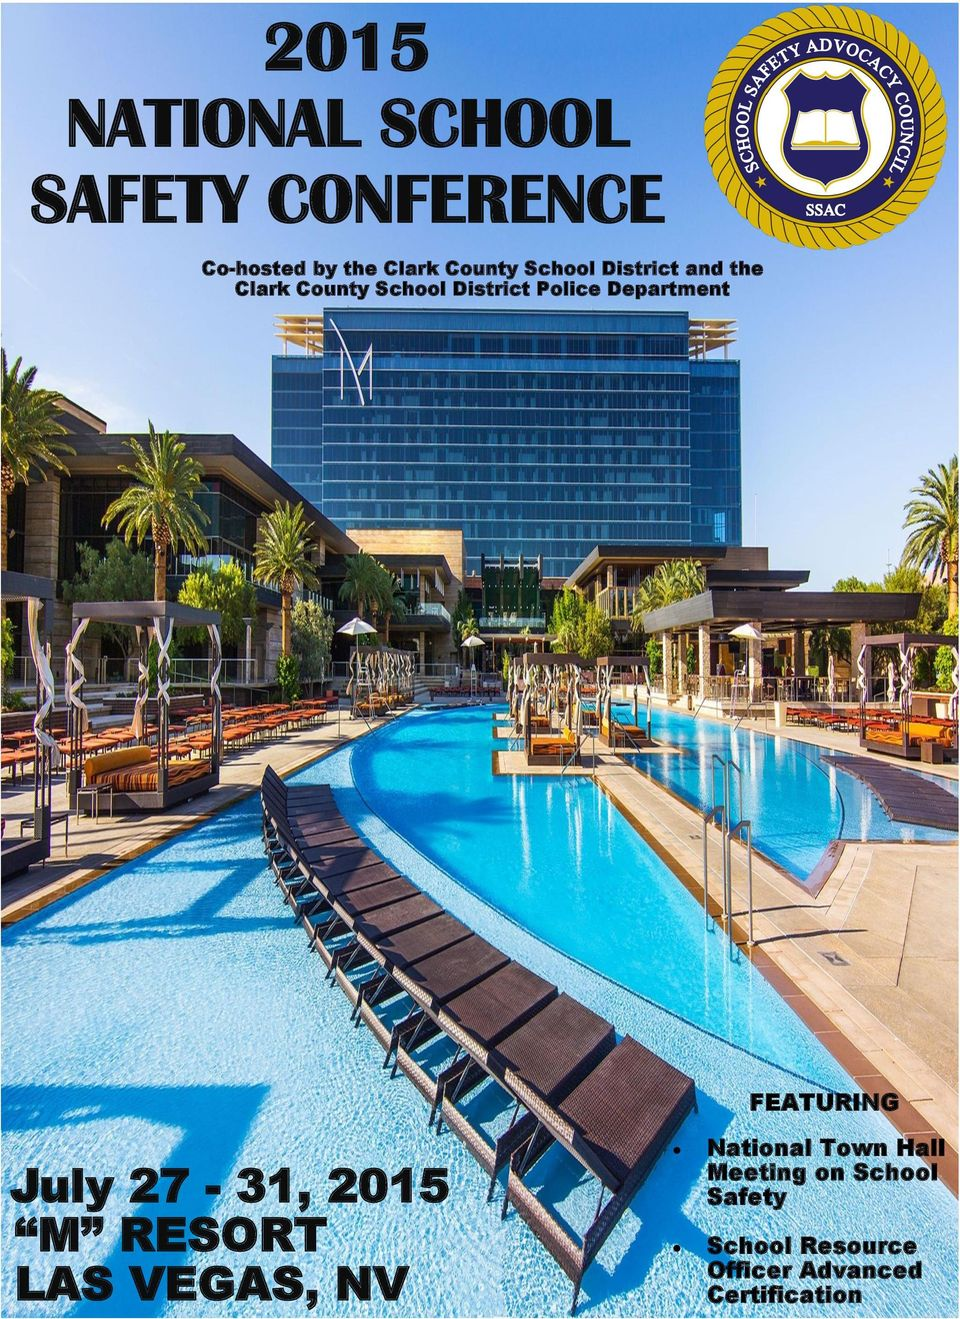 Department FEATURING July 27-31, 2015 M RESORT LAS VEGAS, NV National